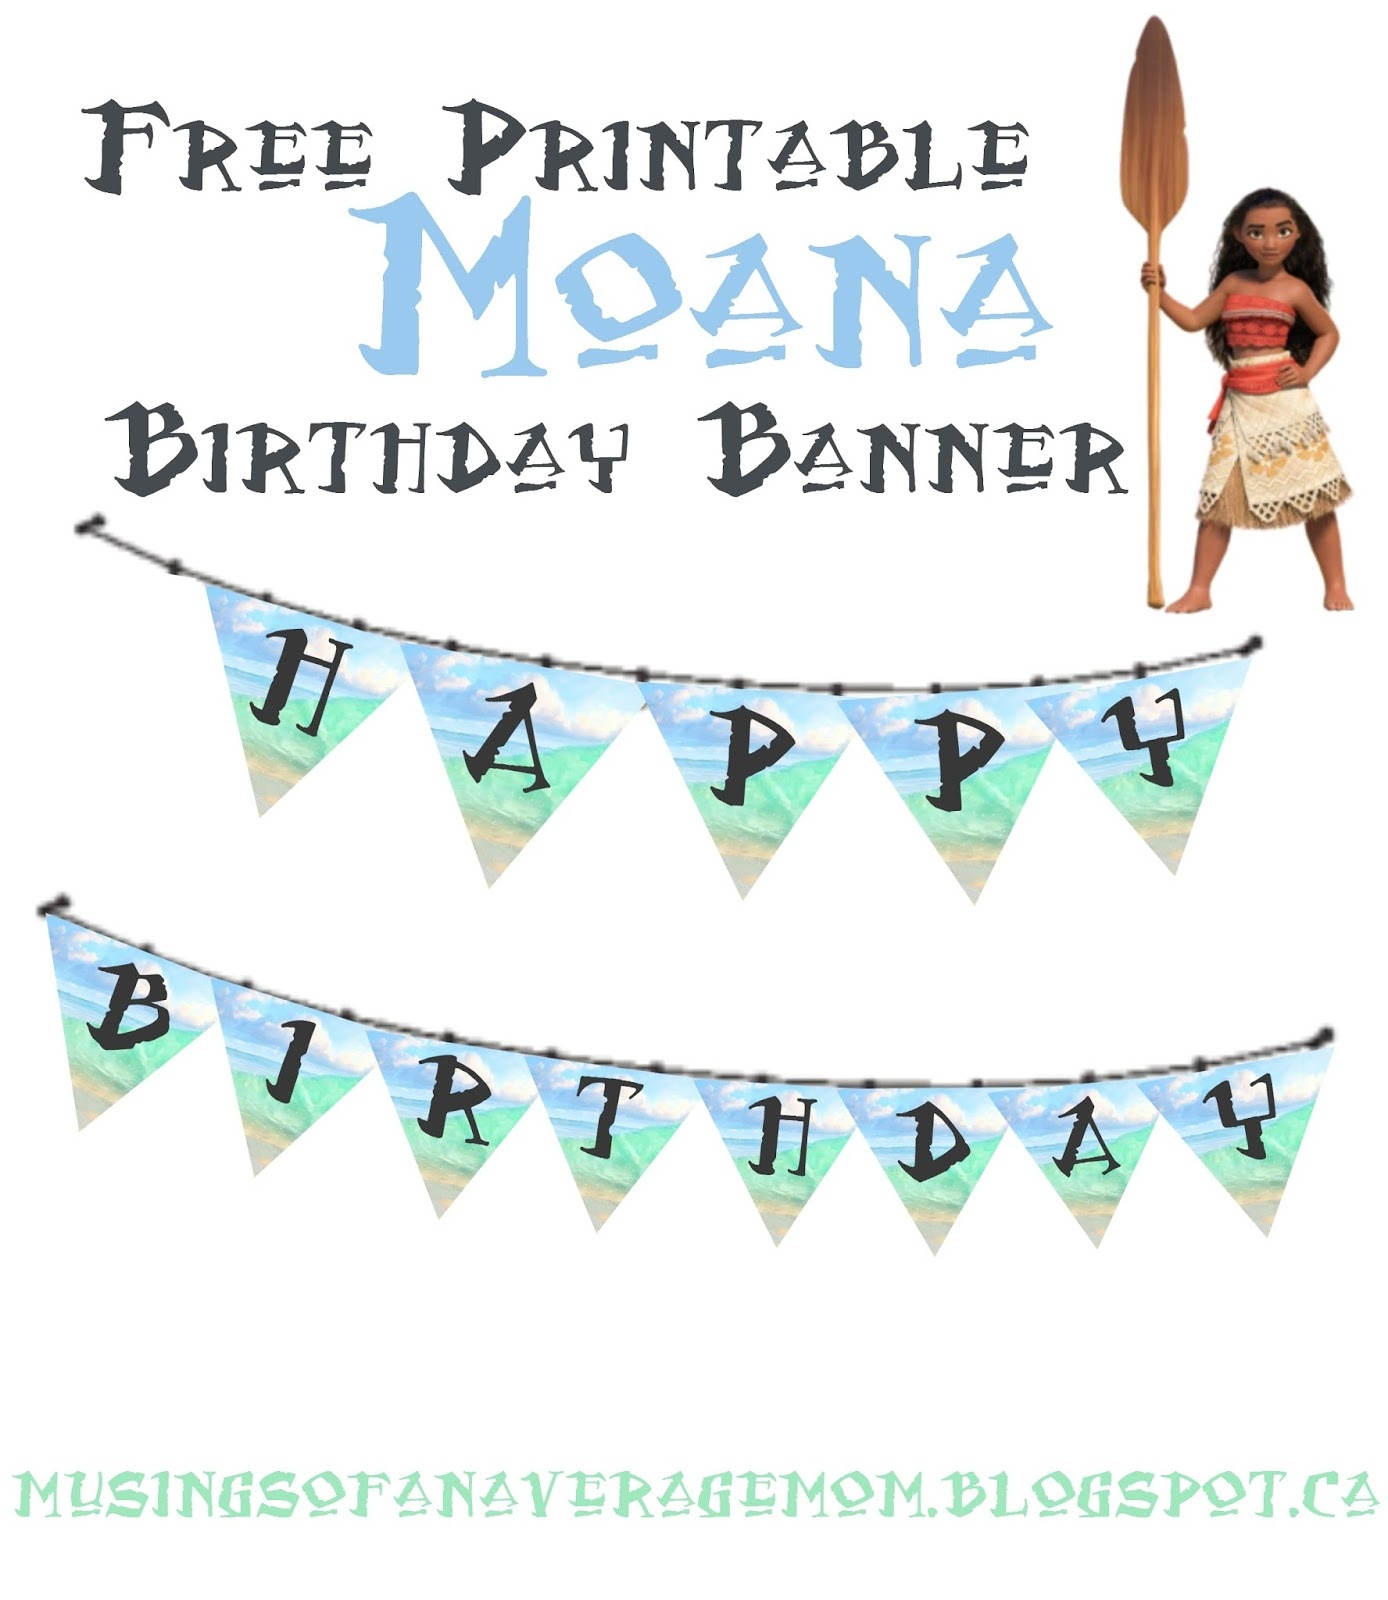 Musings Of An Average Mom: Moana Birthday Banner - Free Printable Moana Banner